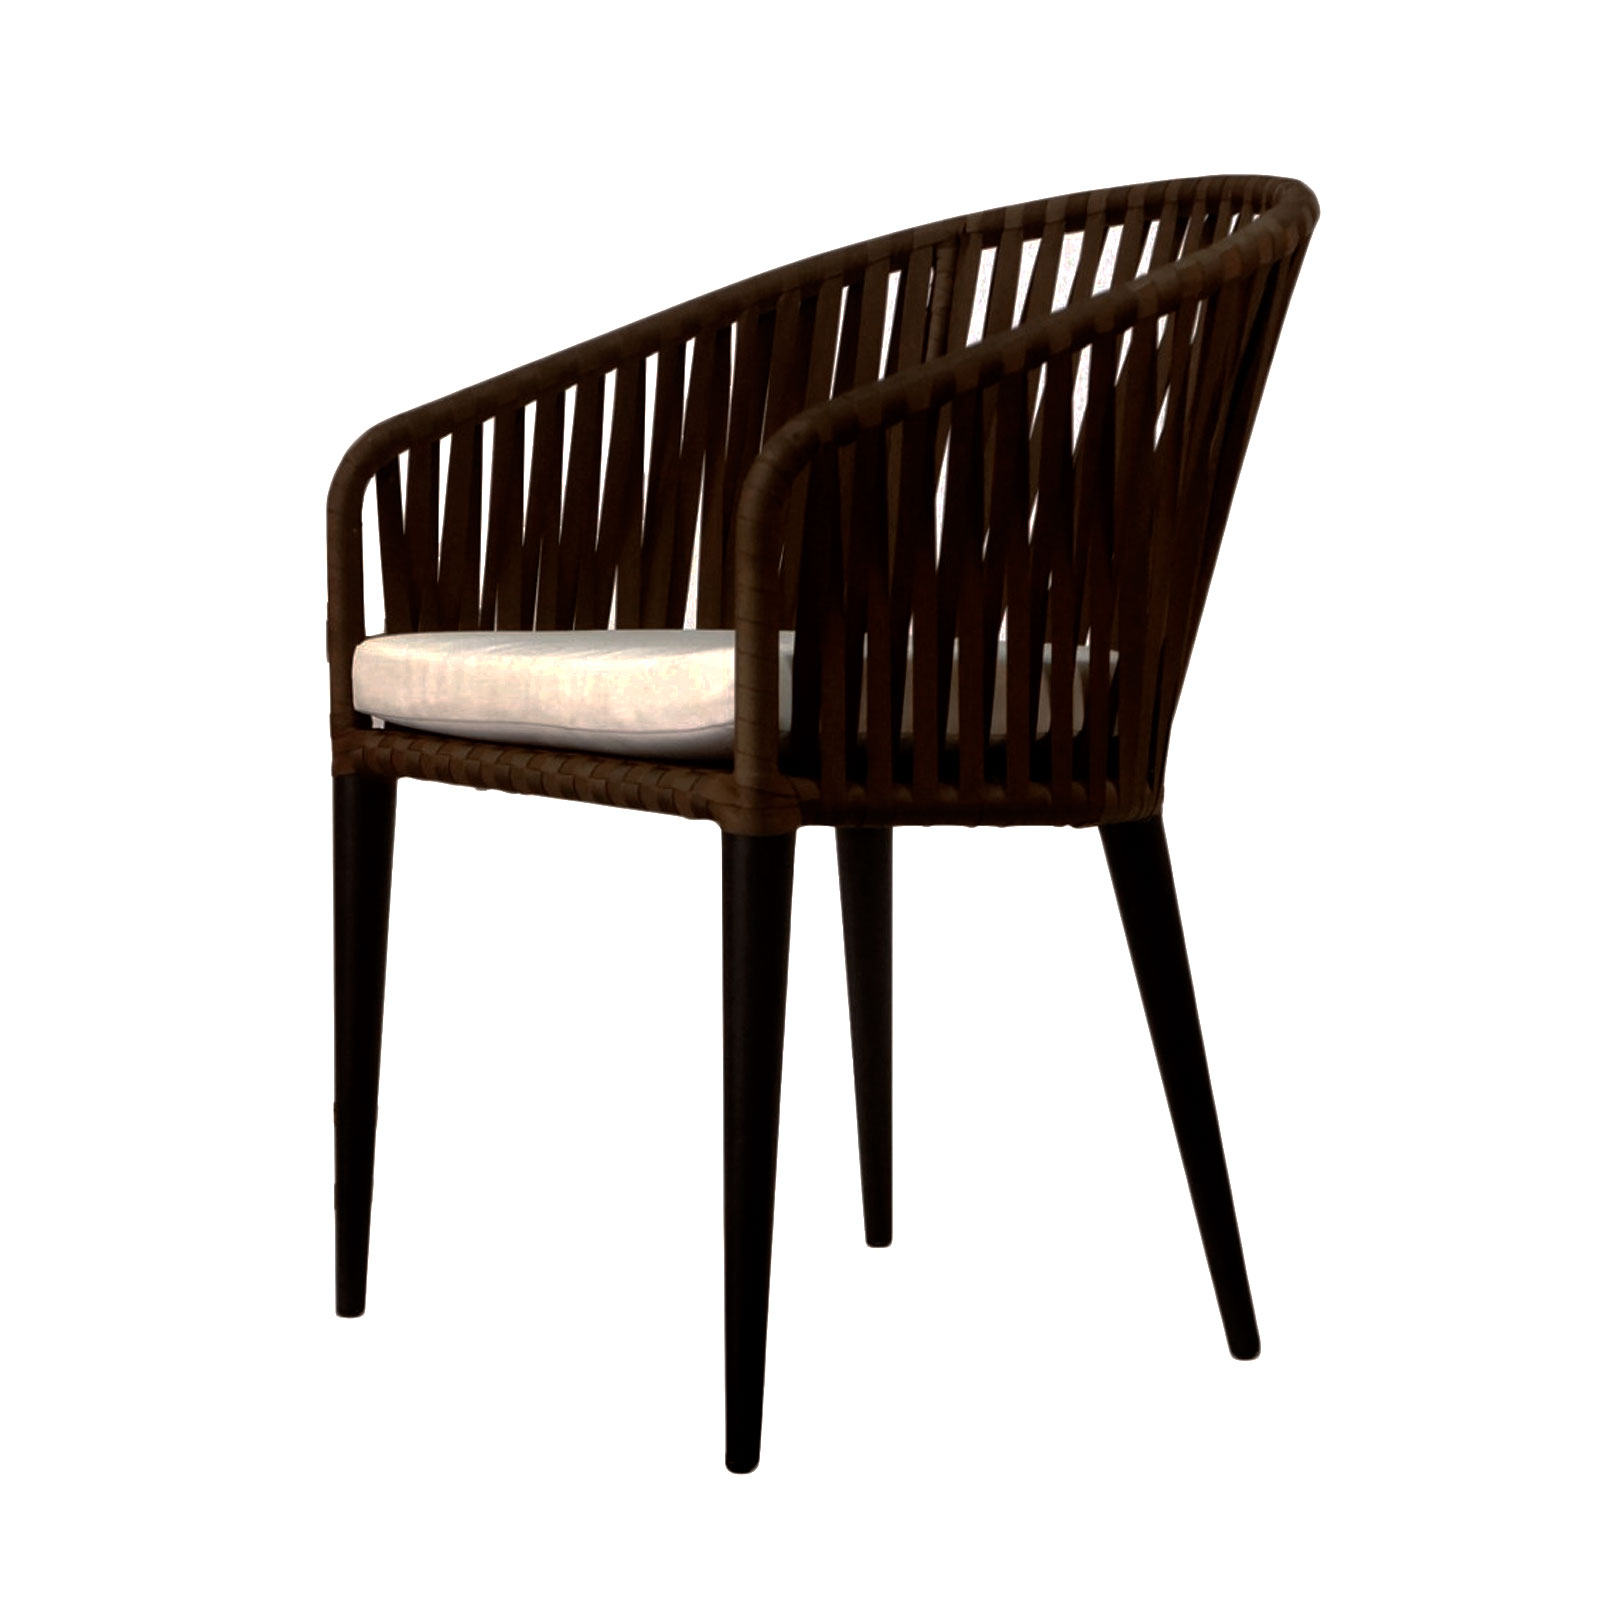 Fantastic Outdoor Side Chair Rentals Outdoor Furniture Rental Caraccident5 Cool Chair Designs And Ideas Caraccident5Info